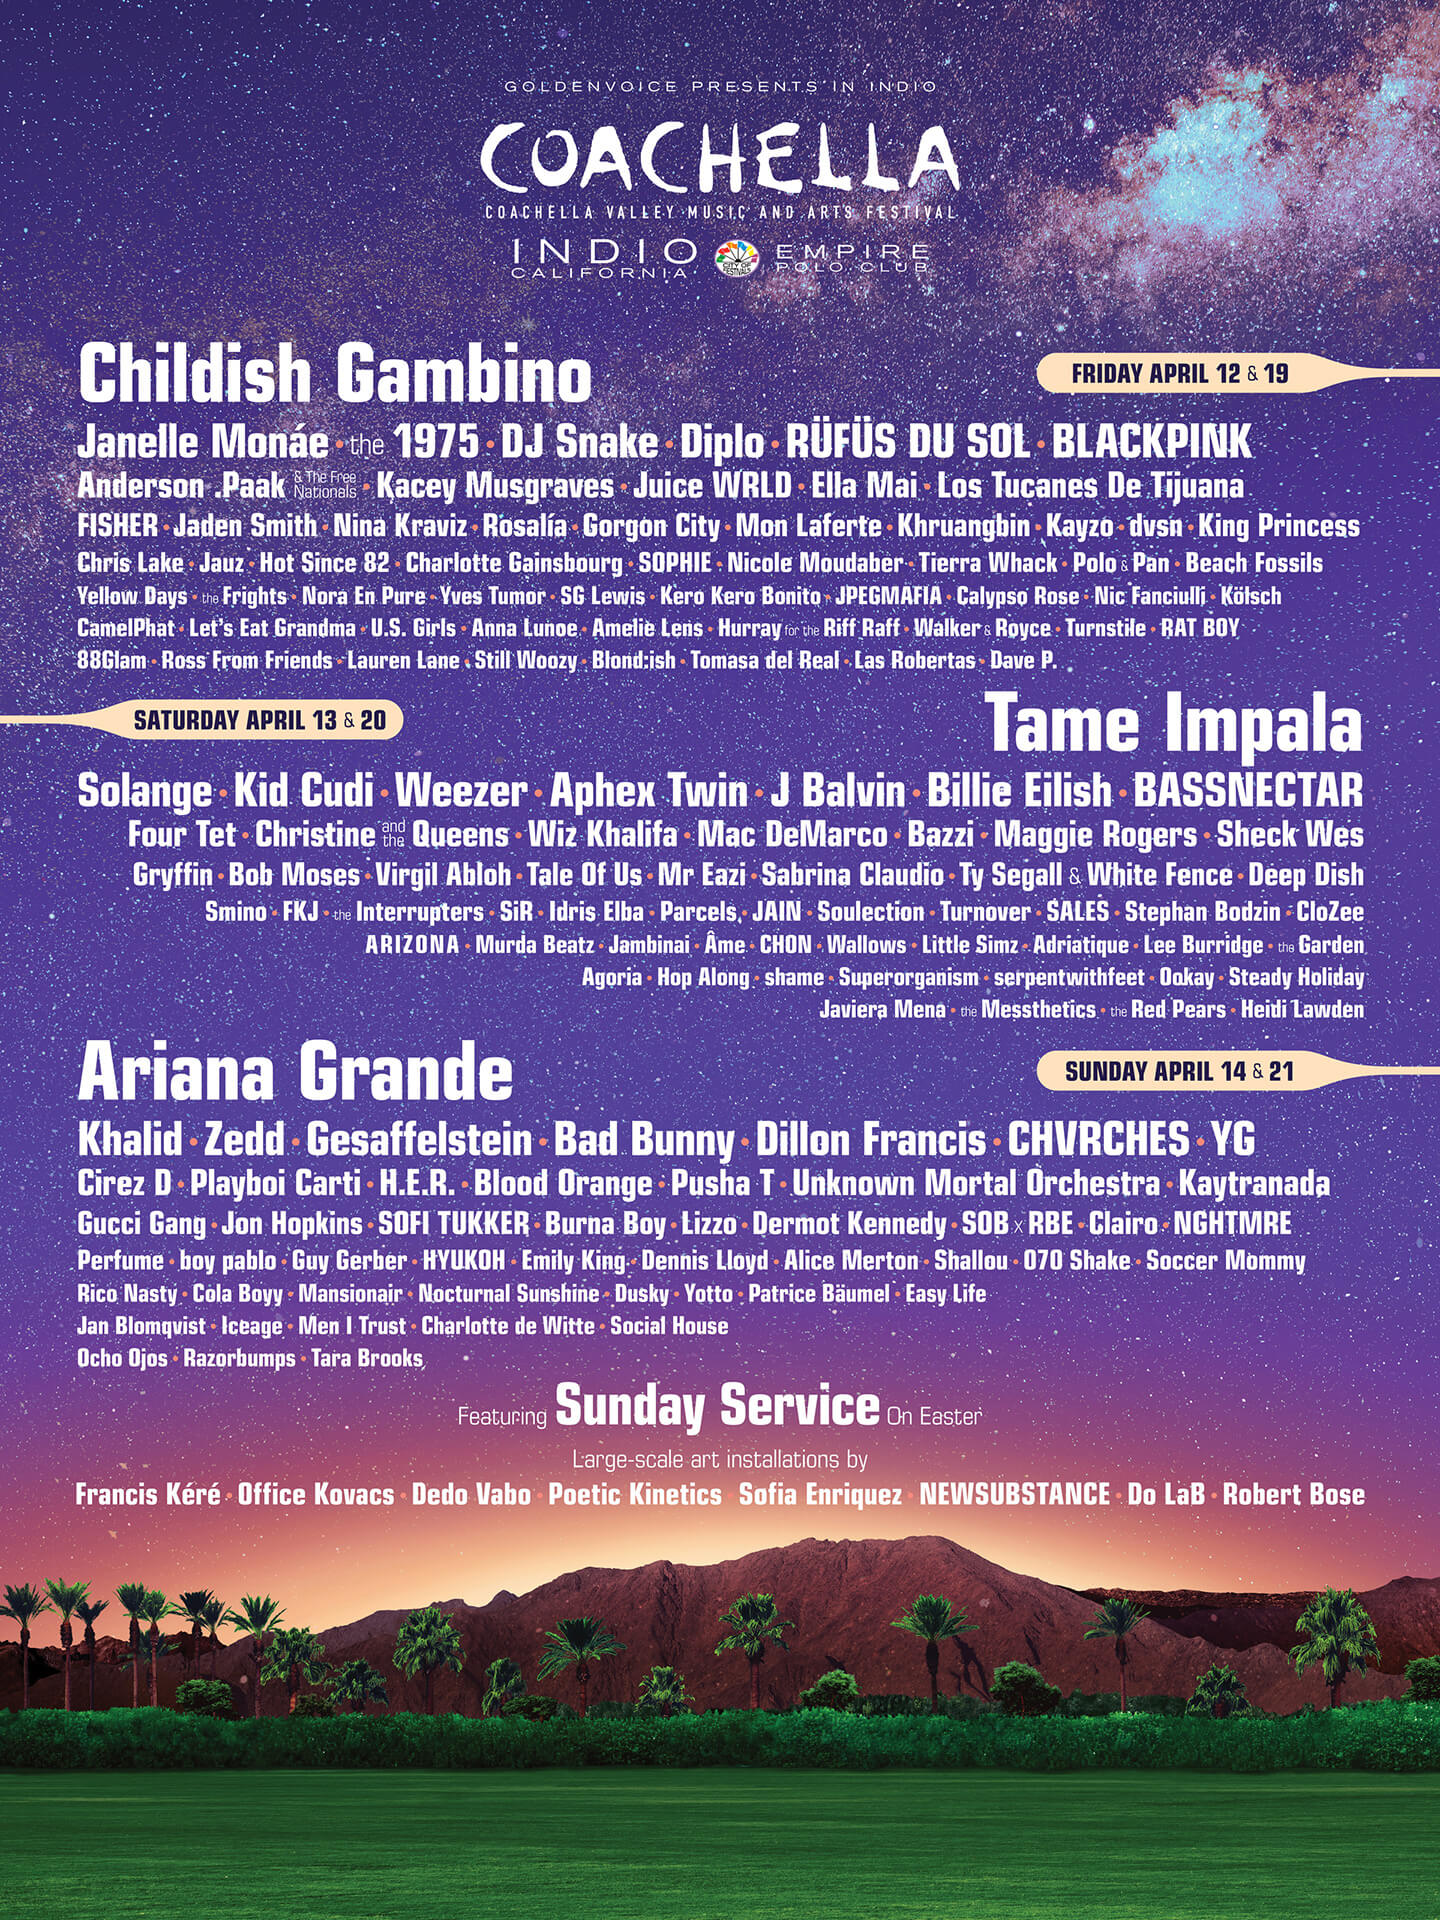 PHOTO: The full 2019 Coachella Lineup. COURTESY the official Coachella Website